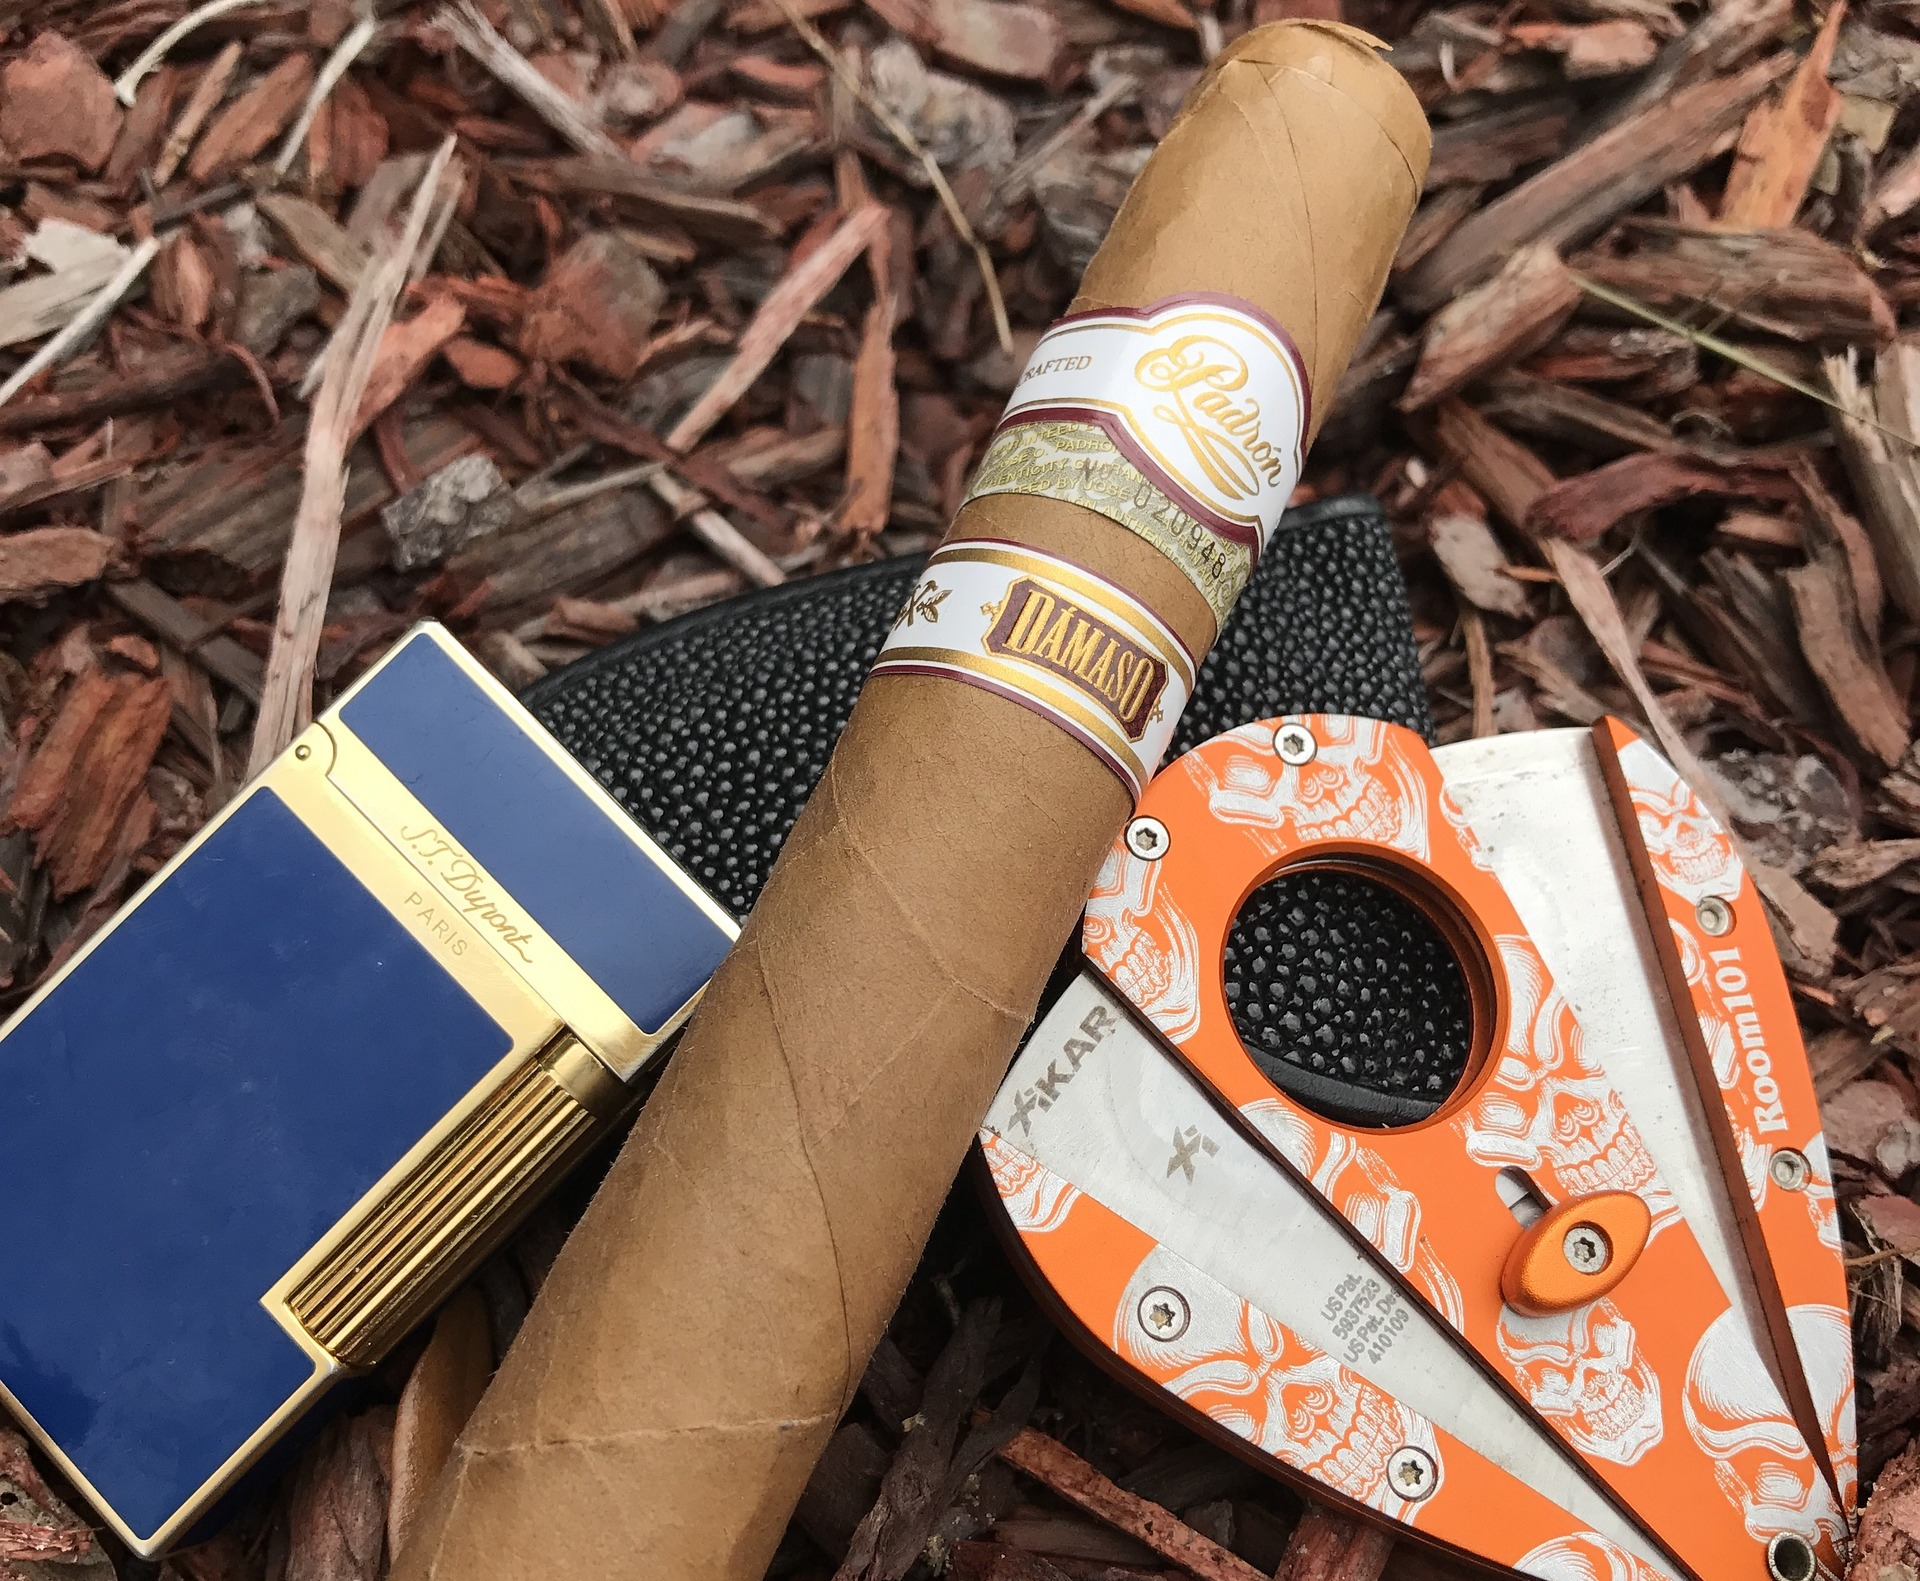 A Padron Cigar with a cigar cutter and lighter on wood chippings